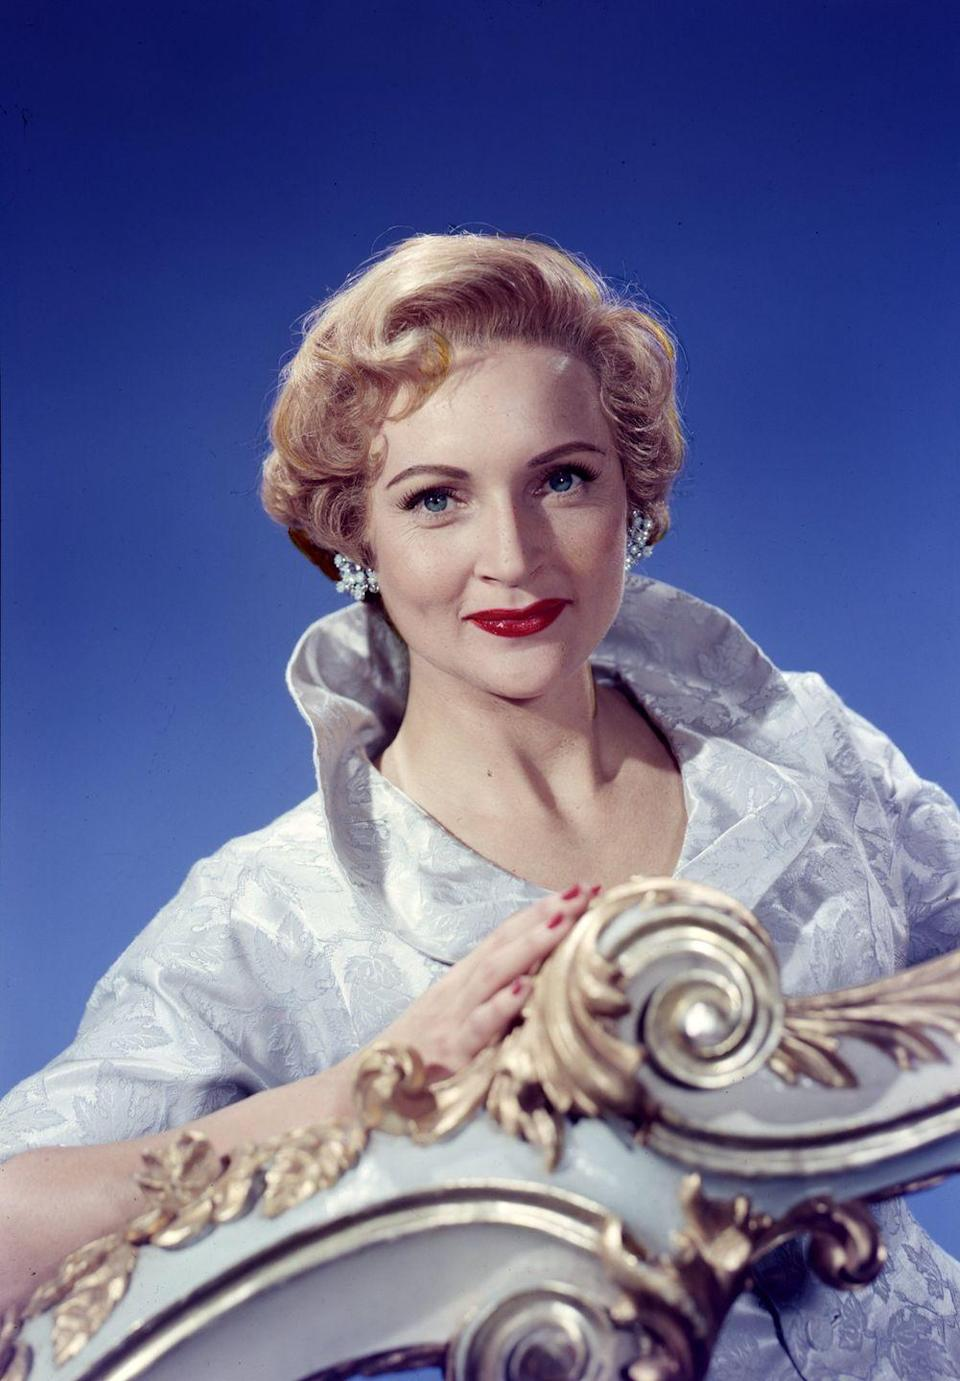 <p>Betty's makeup is flawless in this promo shot for the aptly-named <em>Betty White Show</em>. </p>